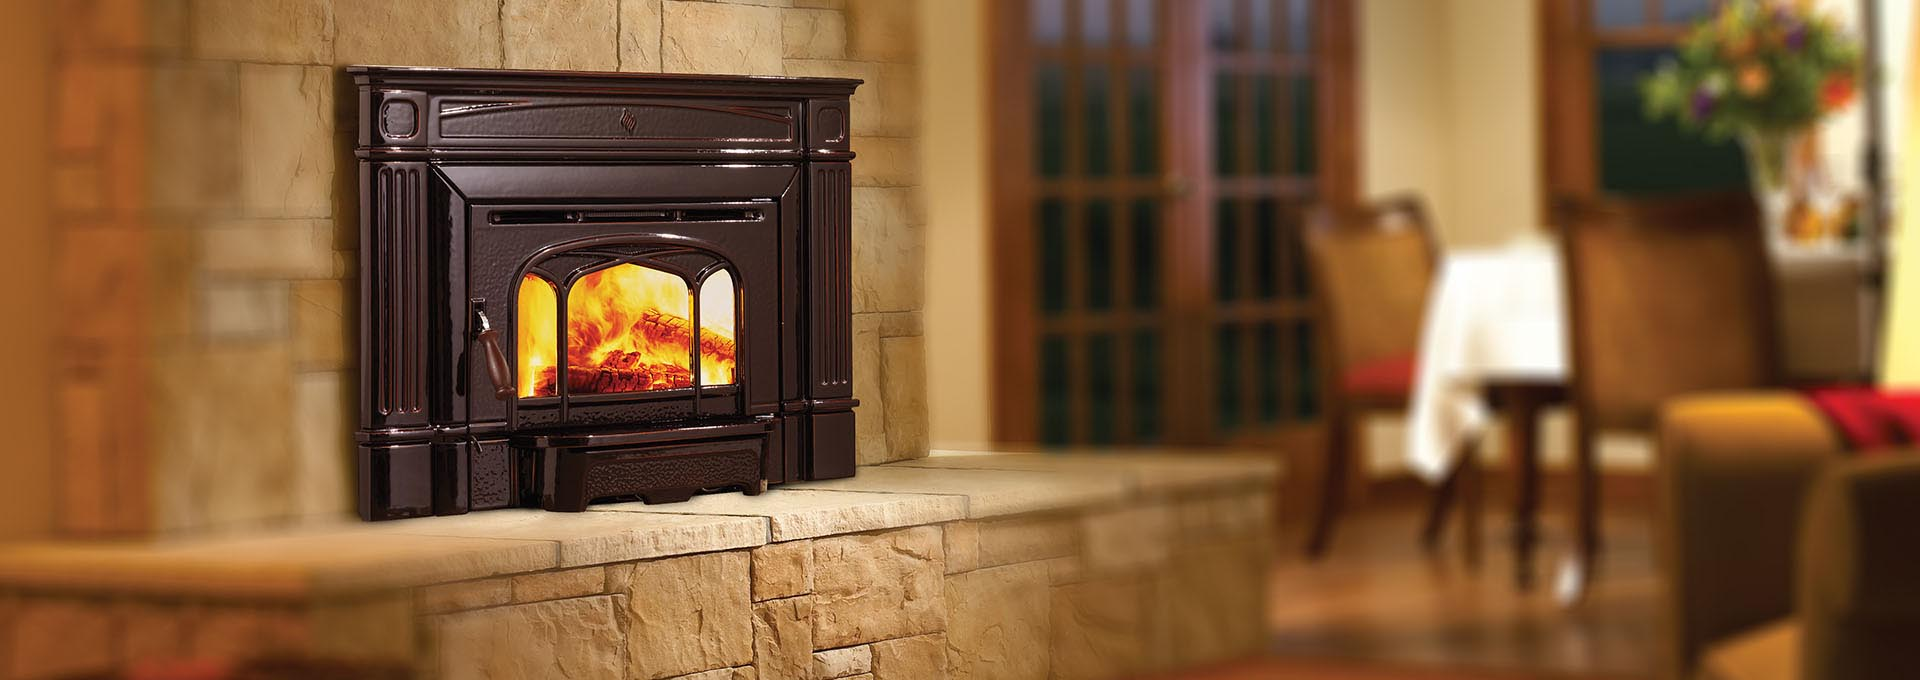 beauty reviews of classic inserts image wood fireplace